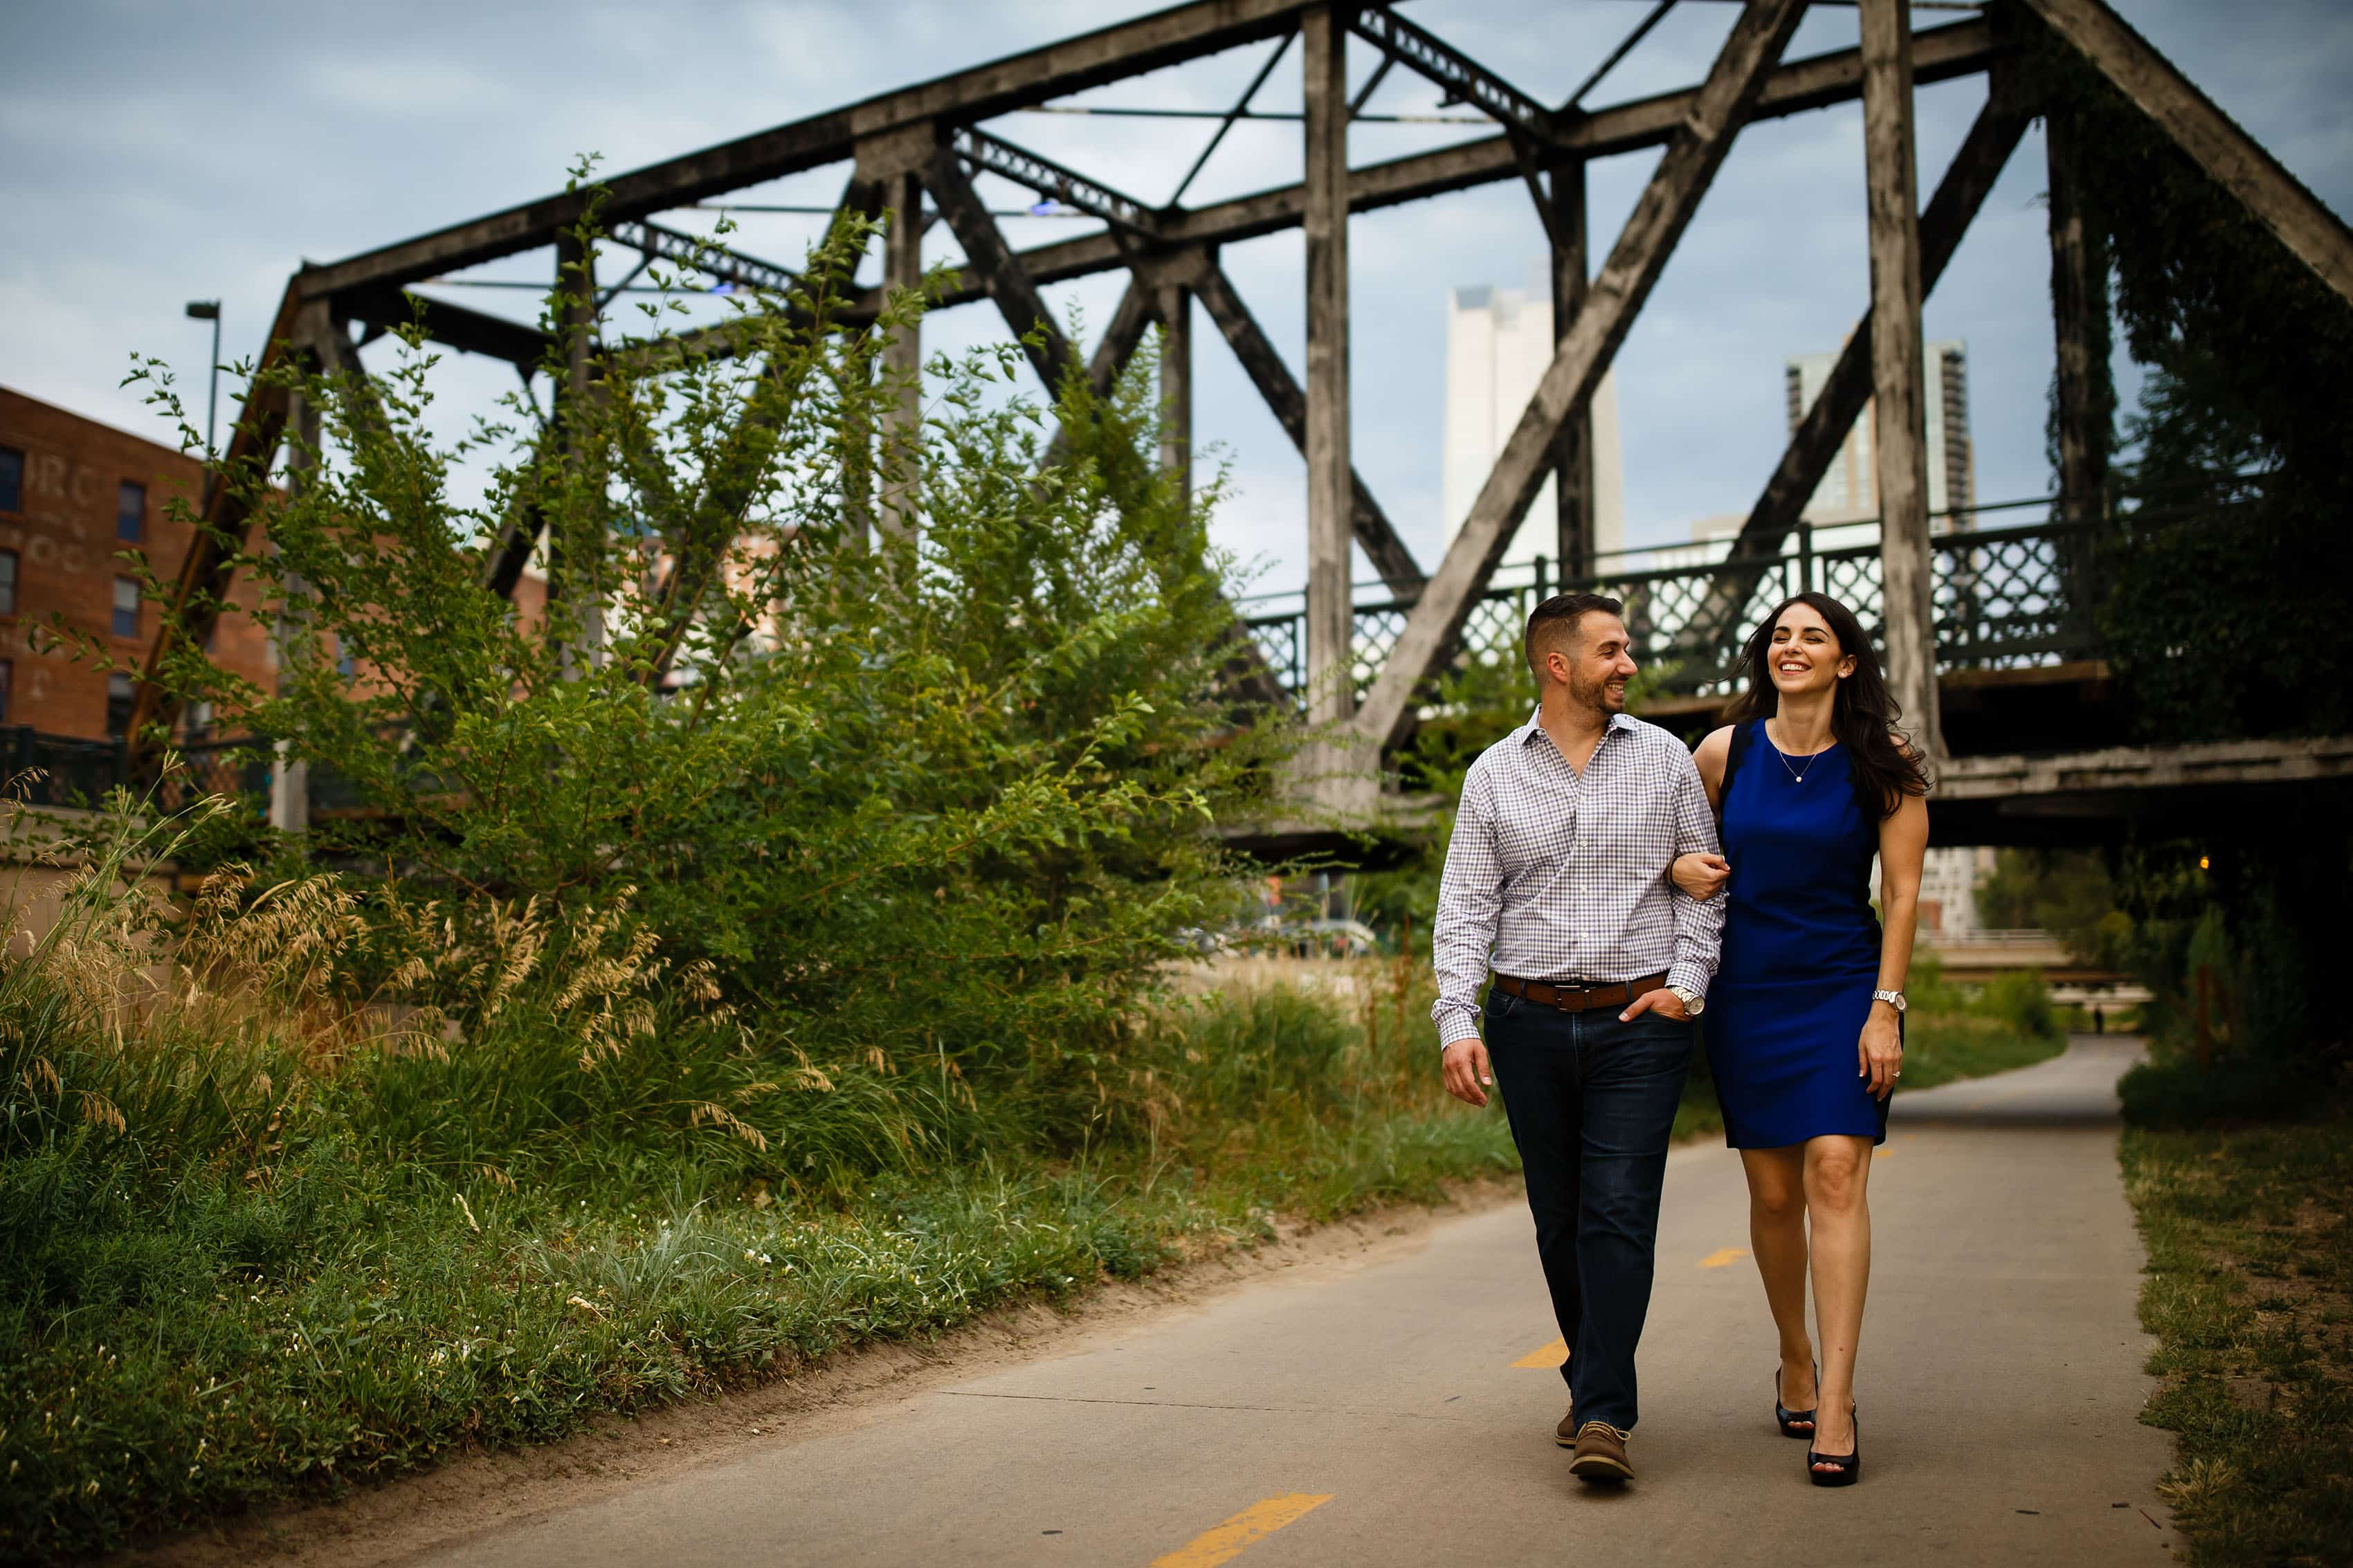 Couple walk and laugh on the Cherry Creek path near the Wynkoop Street Bridge in Denver